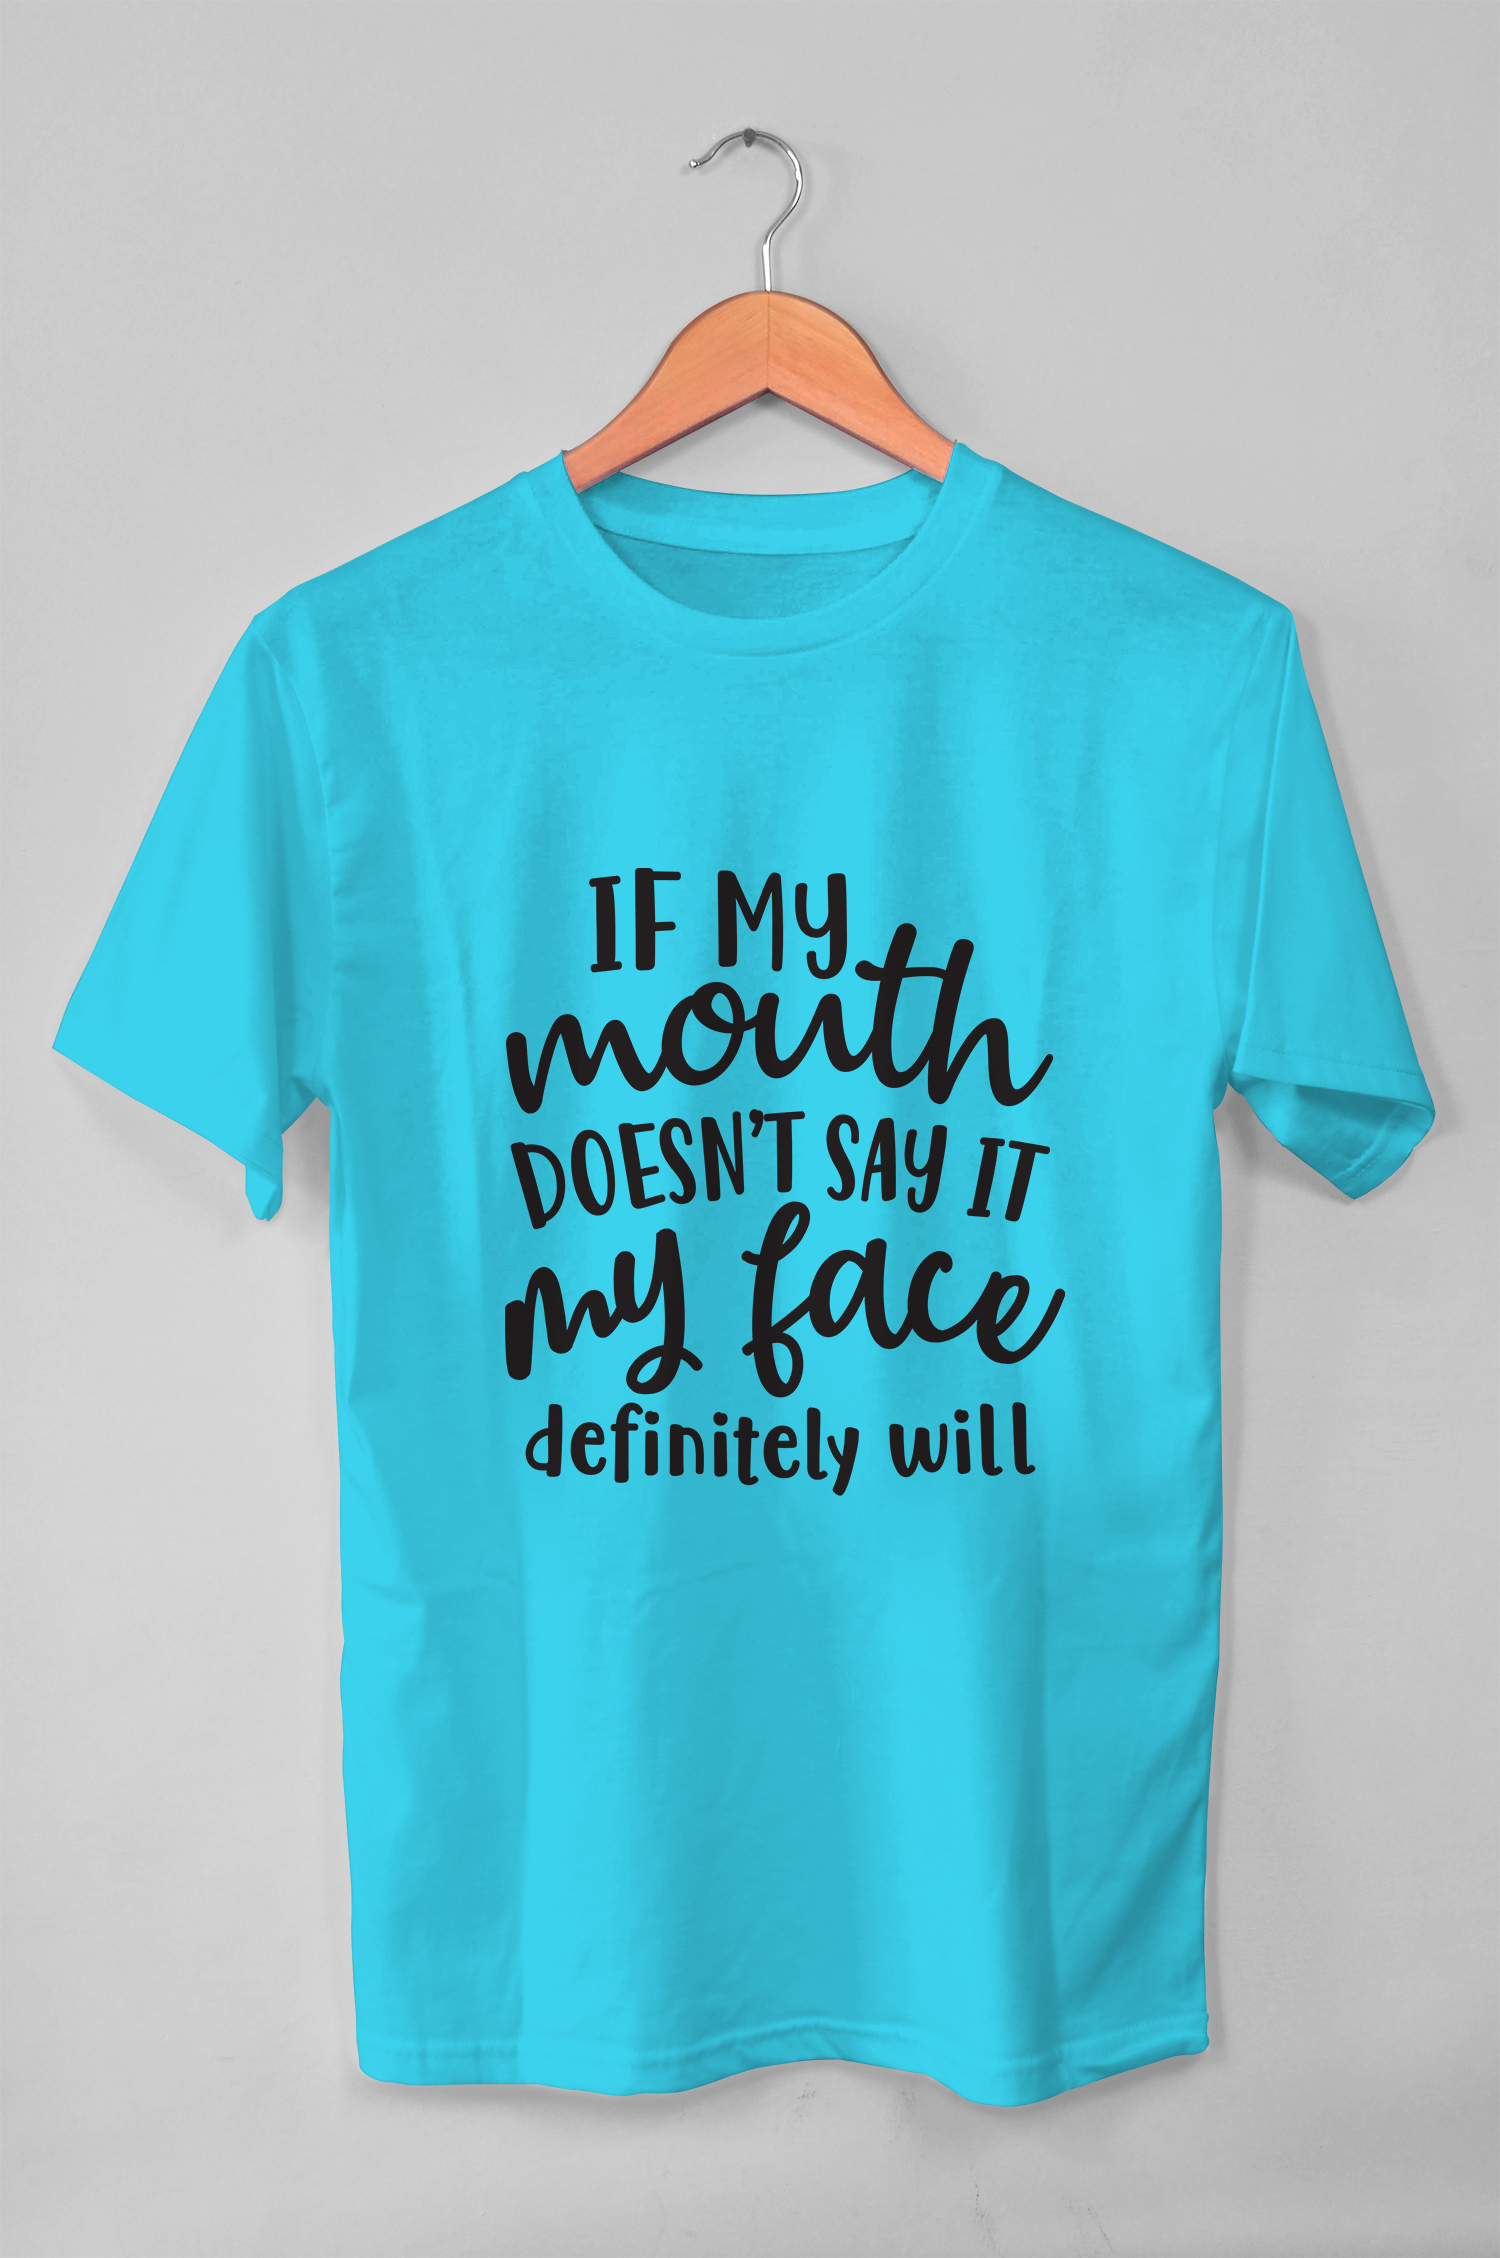 If my mouth doesn't say it, my face will, funny svg file example image 2